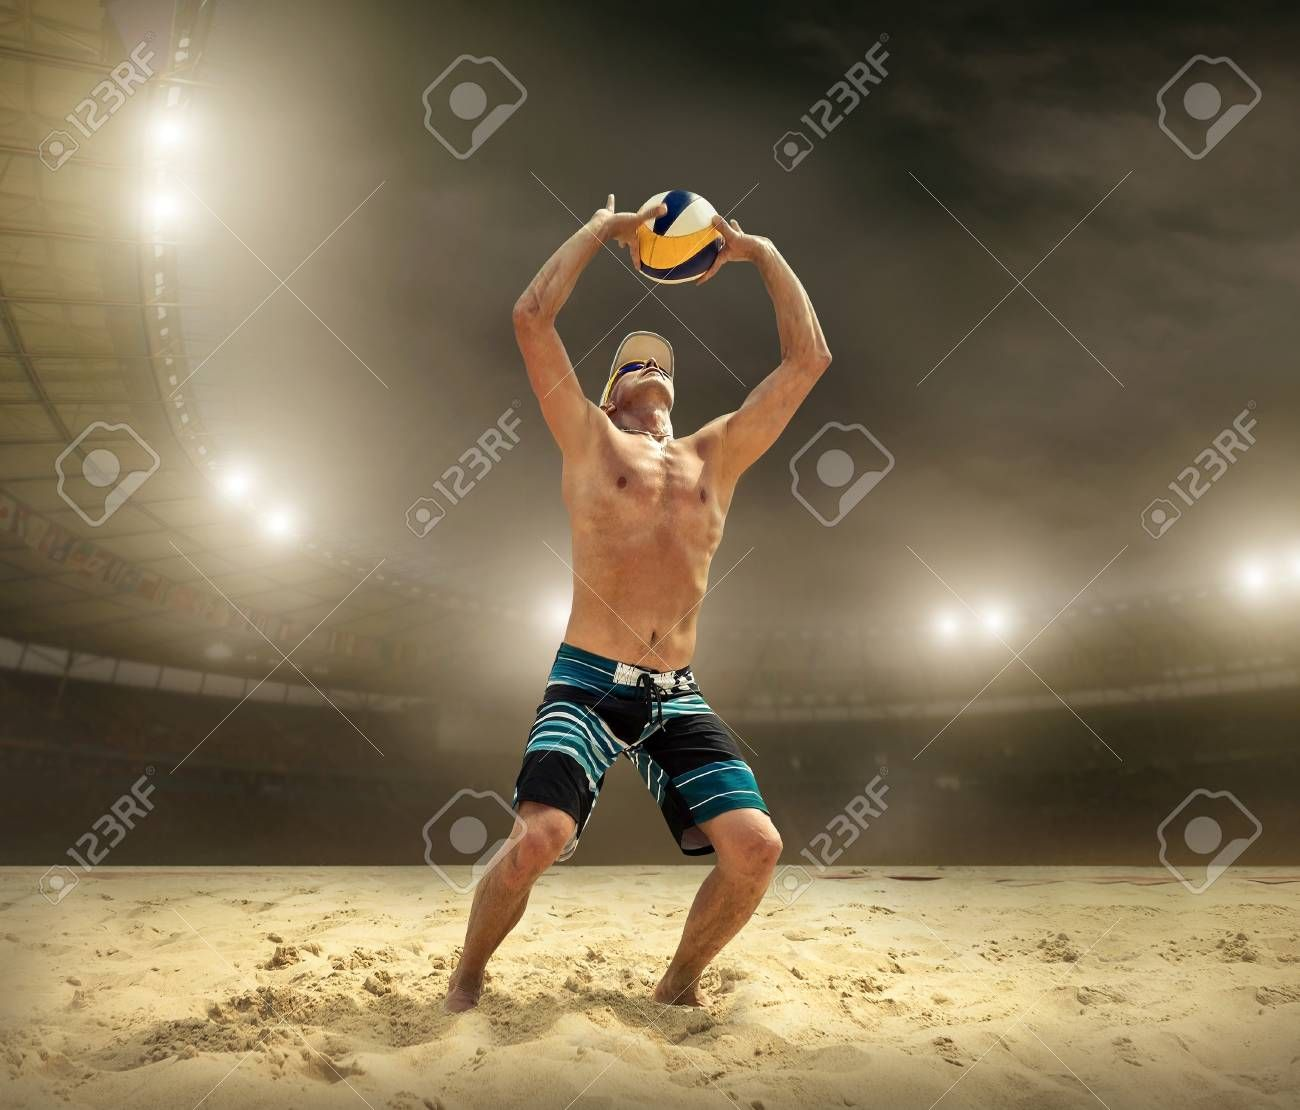 Beach Volleyball Player In Action At Sunny Day Under Blue Sky Stock Photo Ad Action Sunny Player Bea Beach Volleyball Volleyball Players Volleyball